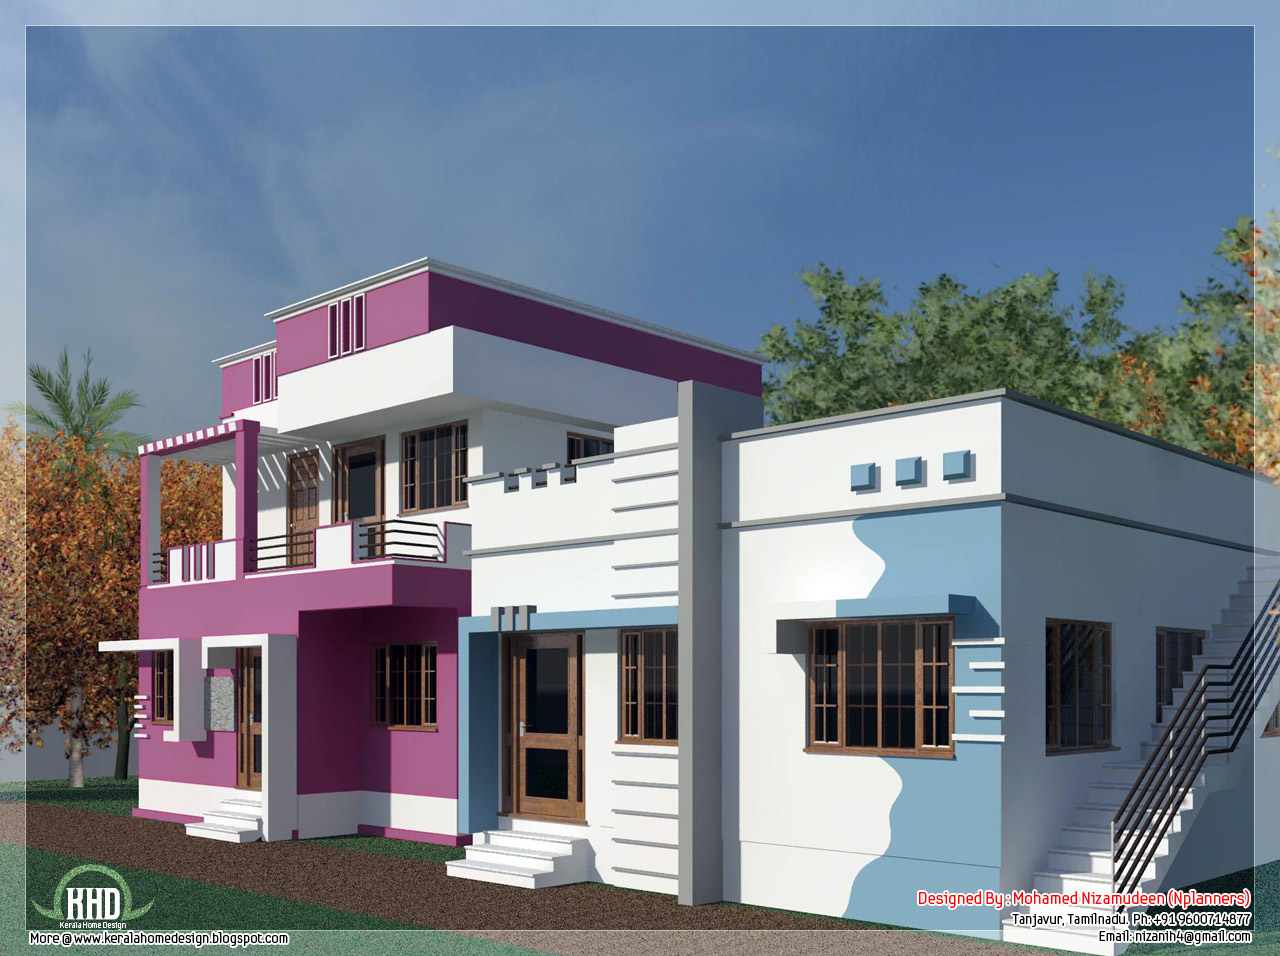 Tamilnadu model home desgin in 3000 kerala home - Exterior paint calculator square feet model ...